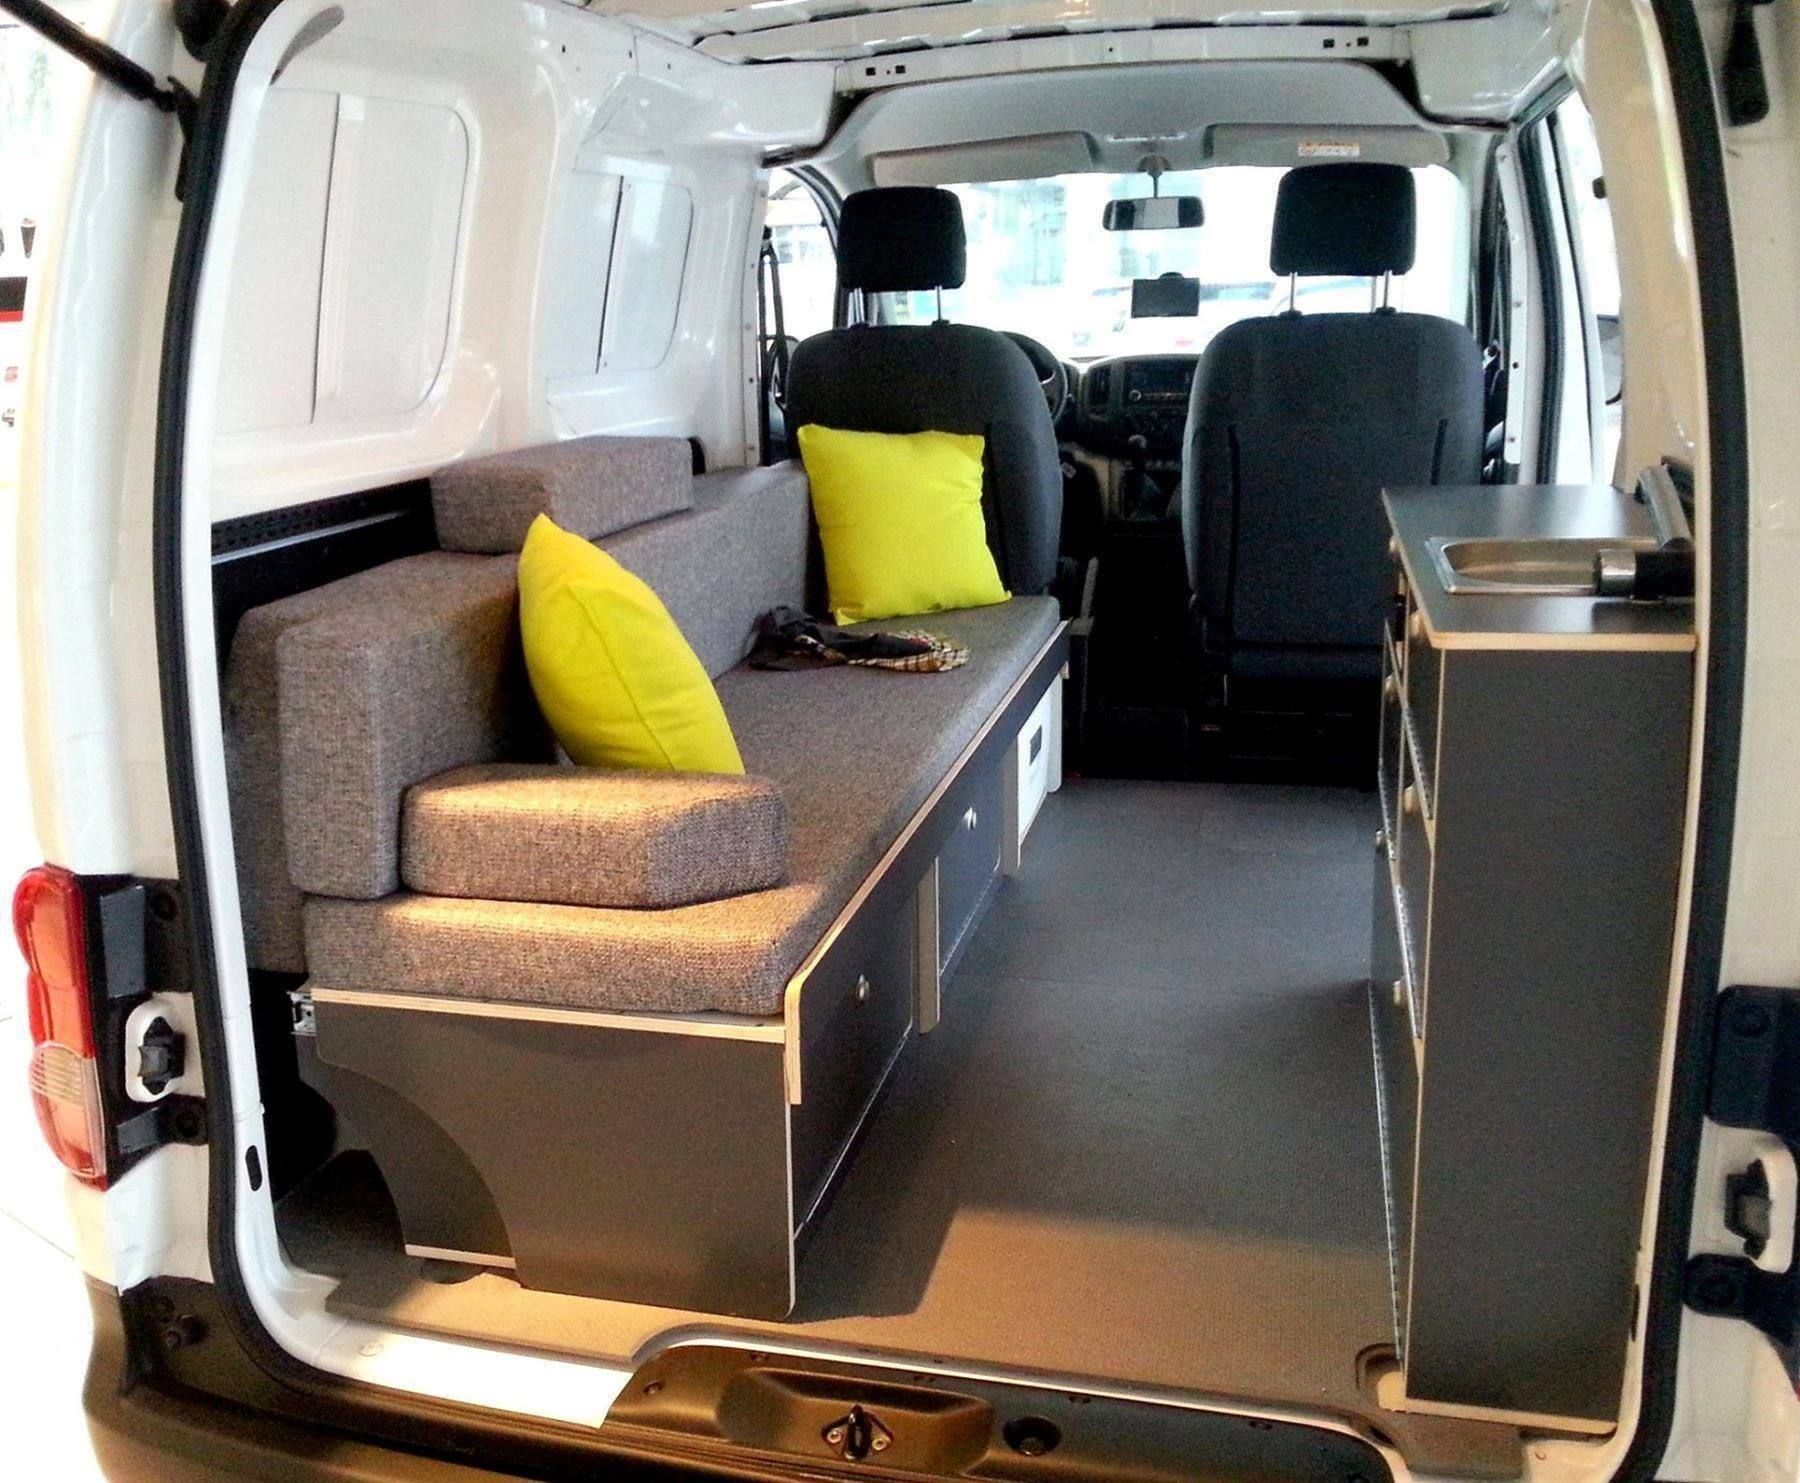 bett sofa f r nissan nv200 mini camper 10 29 00 1 campingbus pinterest. Black Bedroom Furniture Sets. Home Design Ideas